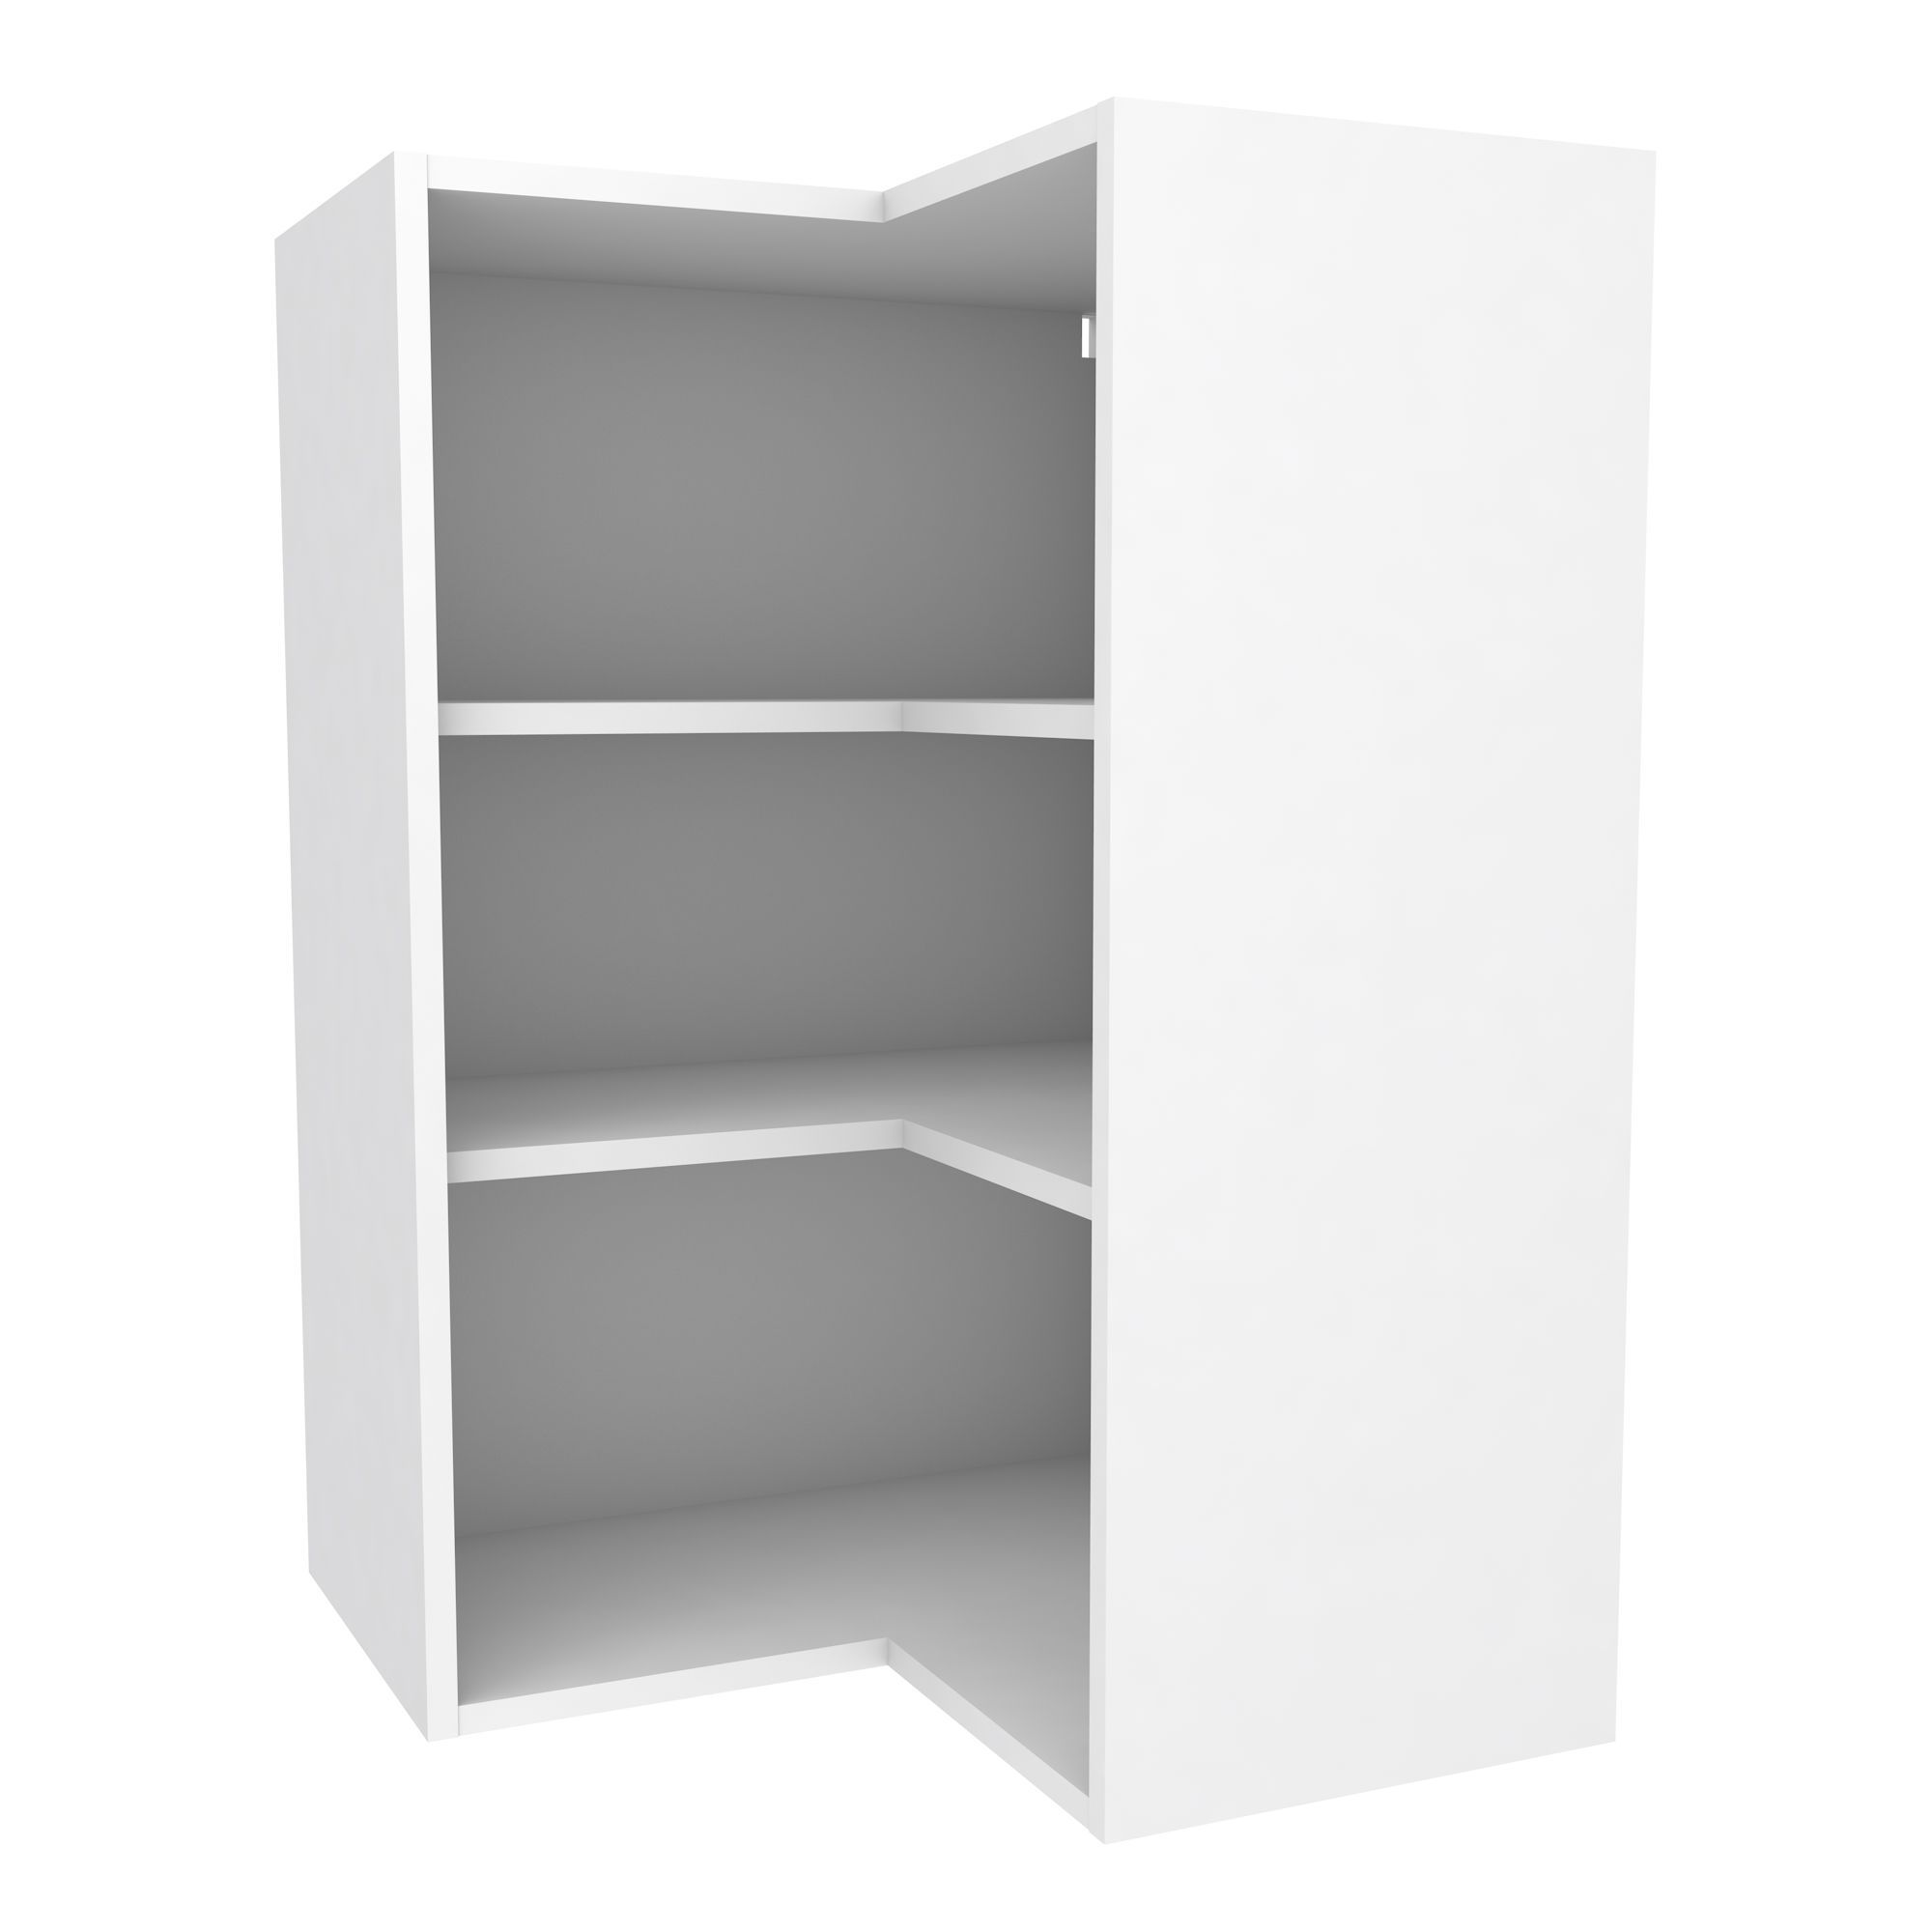 Cooke & Lewis White Corner Tall Wall Cabinet (w)625mm